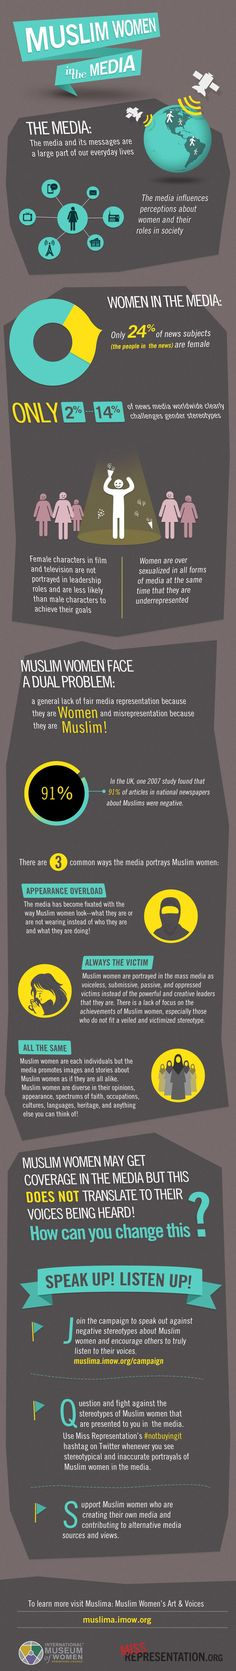 Muslim Women Everywhere Deserve Better. Can We Break These Stereotypes Already?